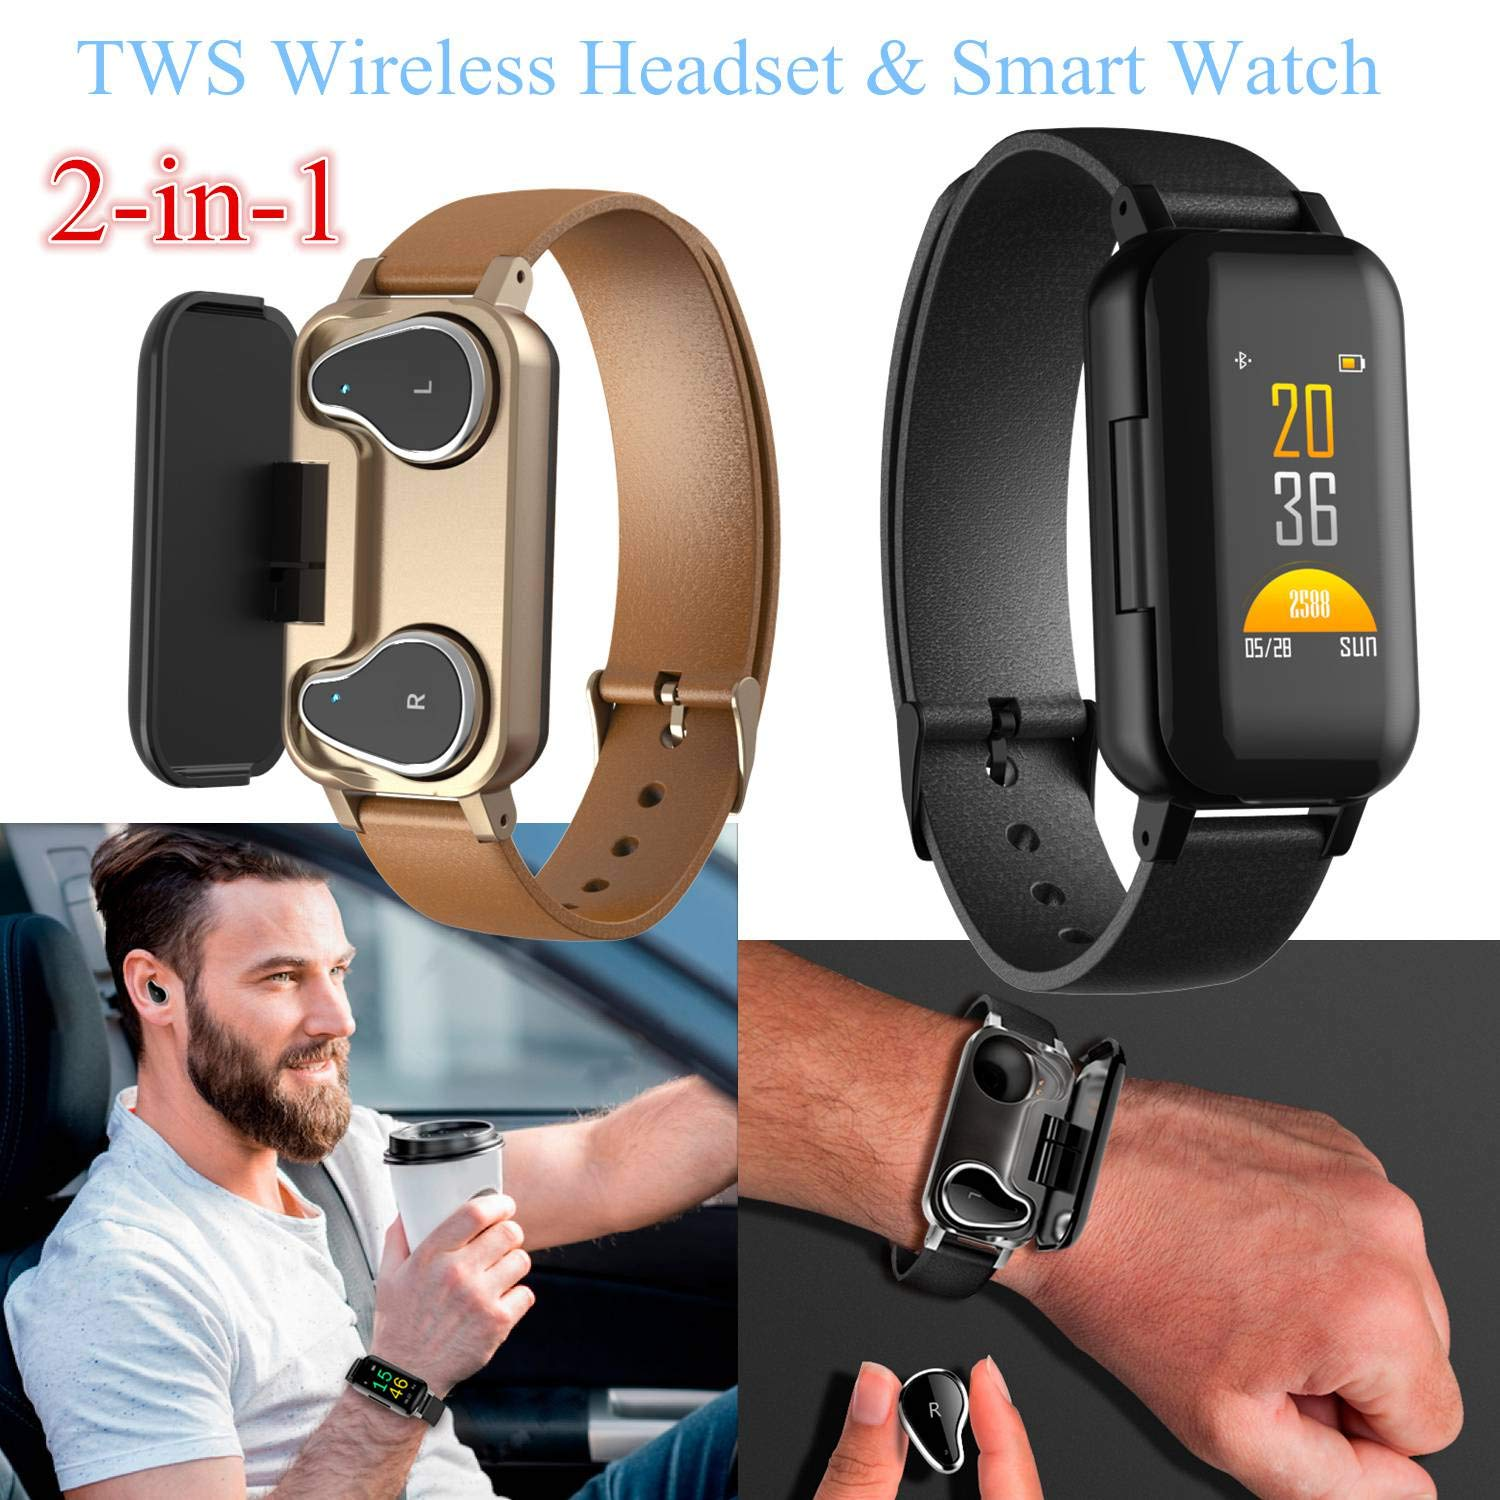 Smart Watch and Wireless Blue-tooth TWS Headset 2 in 1 High-fidelity Sound Quality Headphone Sport Music Earphone Heart Rate Monitor Blood Pressure Fitness Tracker Message Reminder Wristband by Sincerest